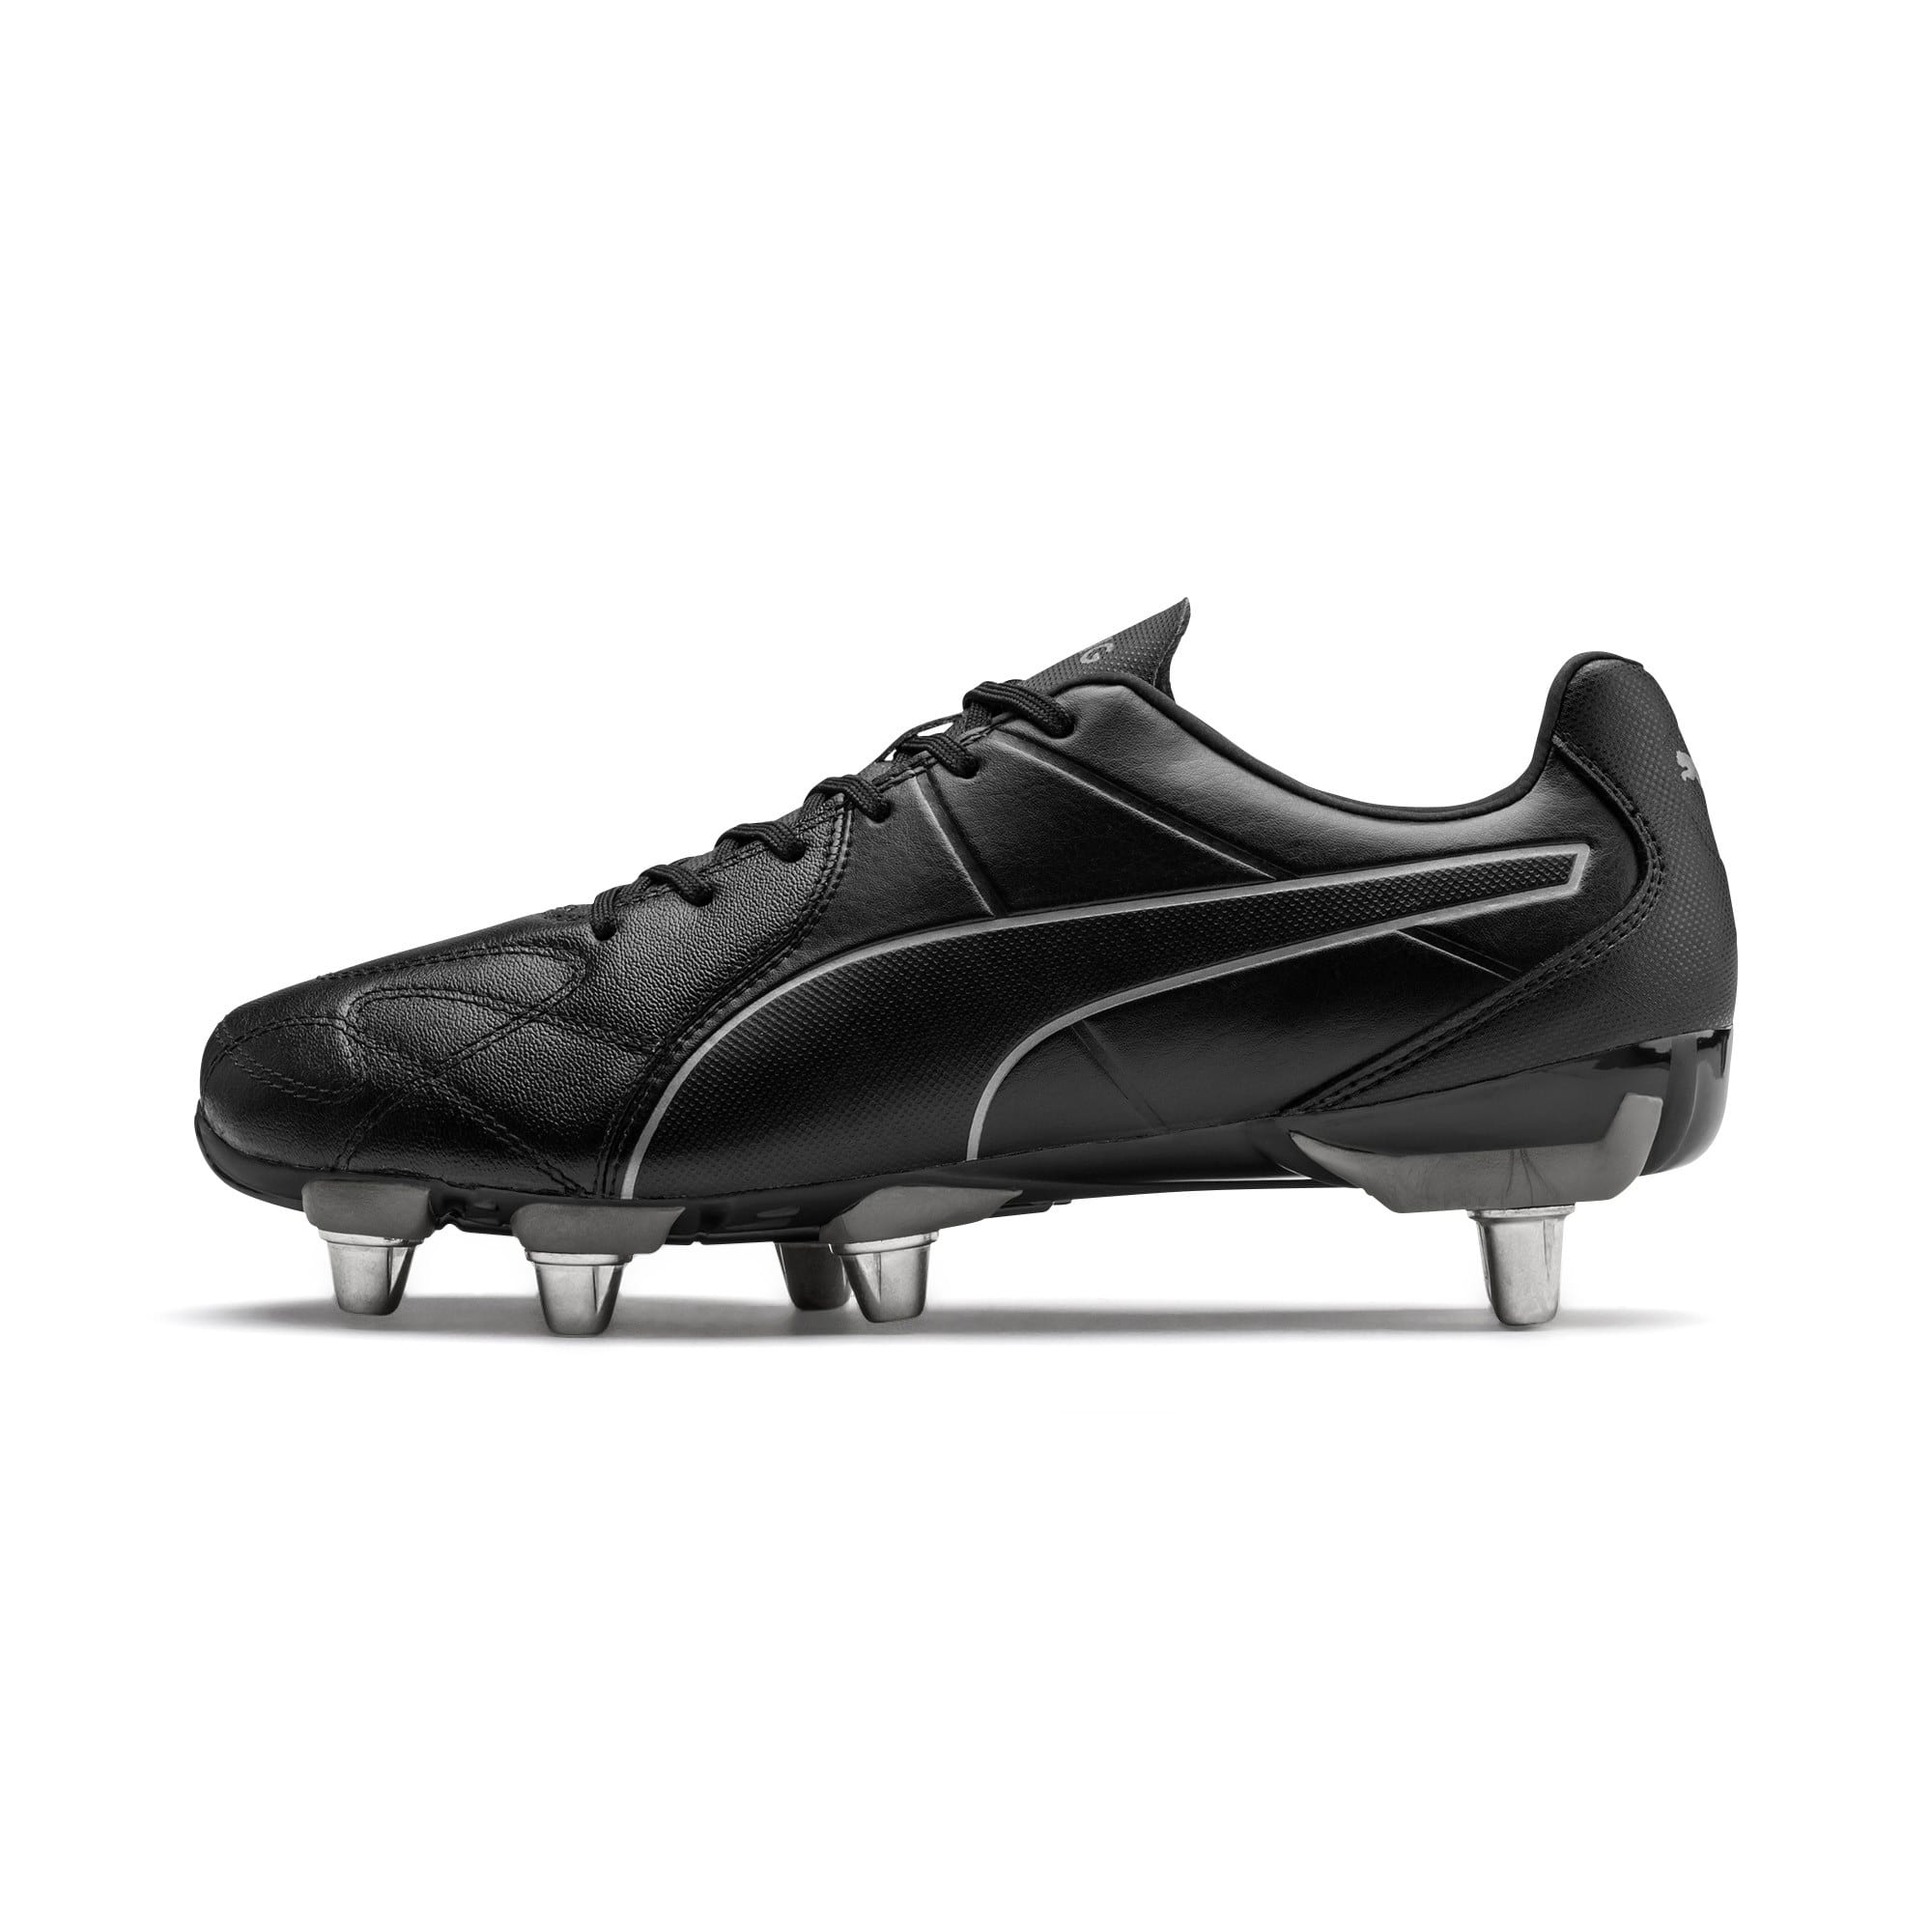 Thumbnail 1 of KING Hero H8 Men's Rugby Boots, Puma Black-Puma Aged Silver, medium